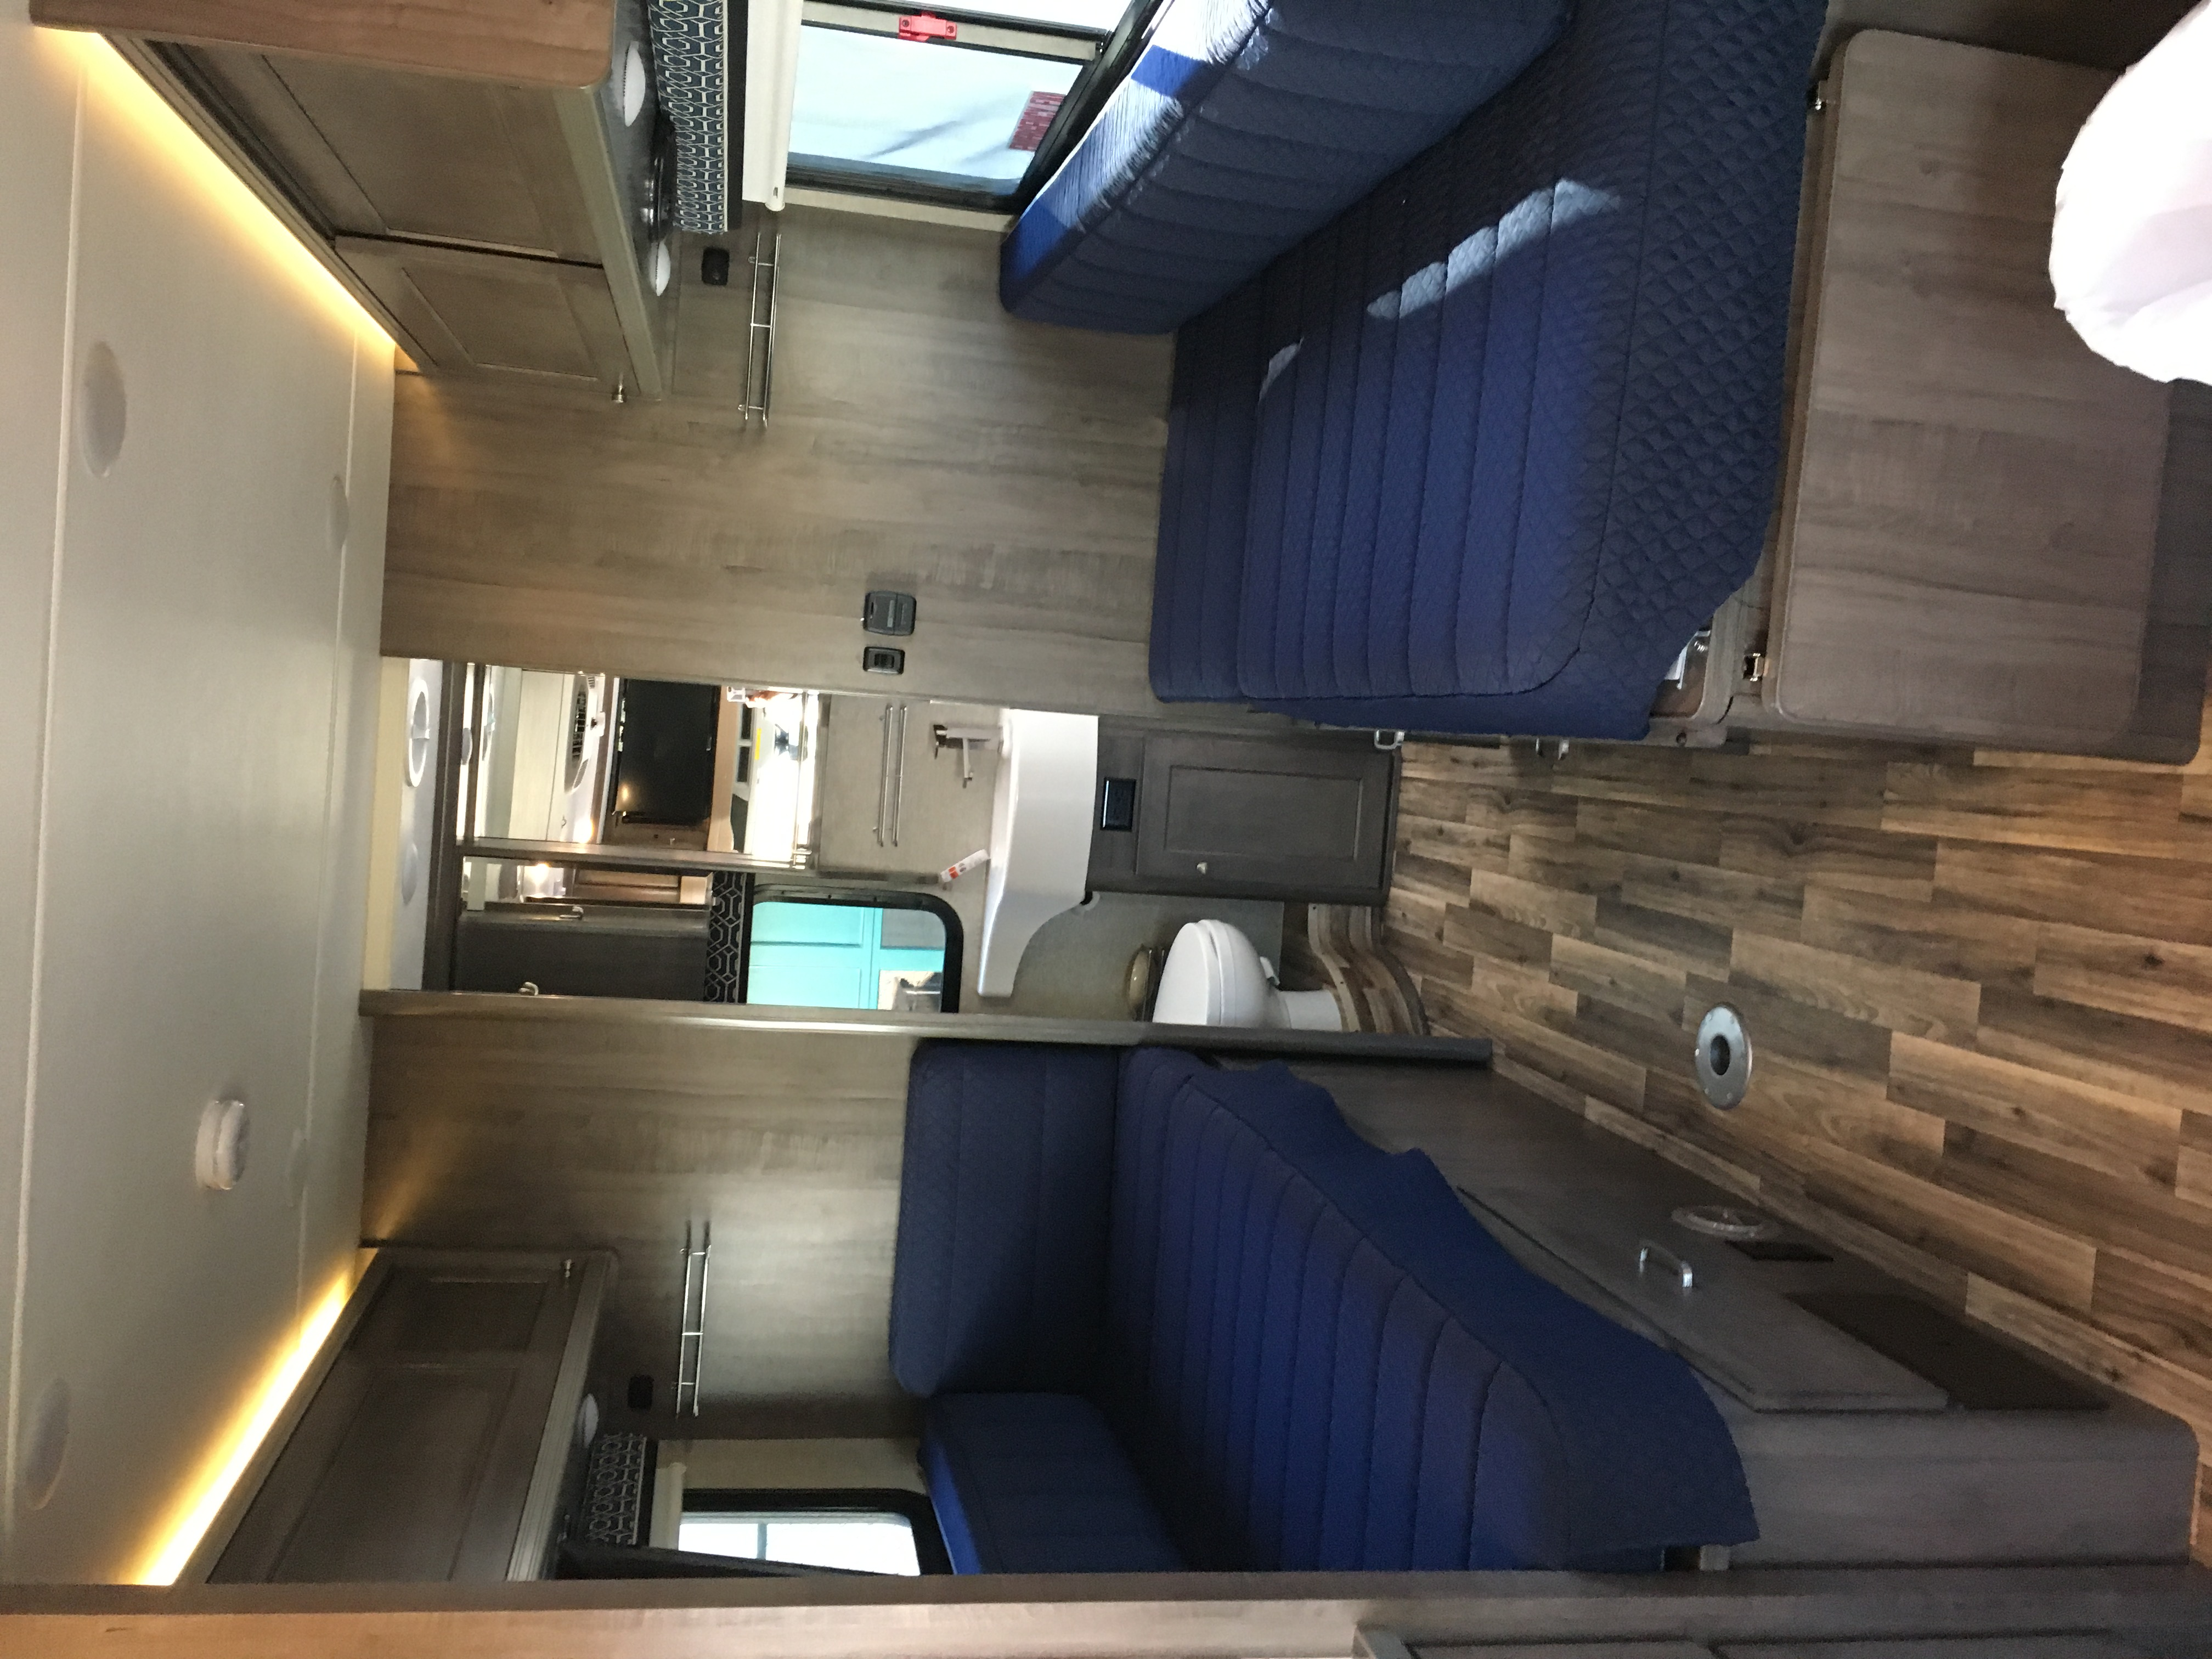 Top 25 Chattahoochee National Forest RV Rentals and Motorhome ... Wiring Diagram Jayco Jay Raven on jayco battery wiring, jayco connector diagram, pop up camper lift system diagram, jayco plumbing diagram, jayco pop-up wiring, jayco owner's manual,